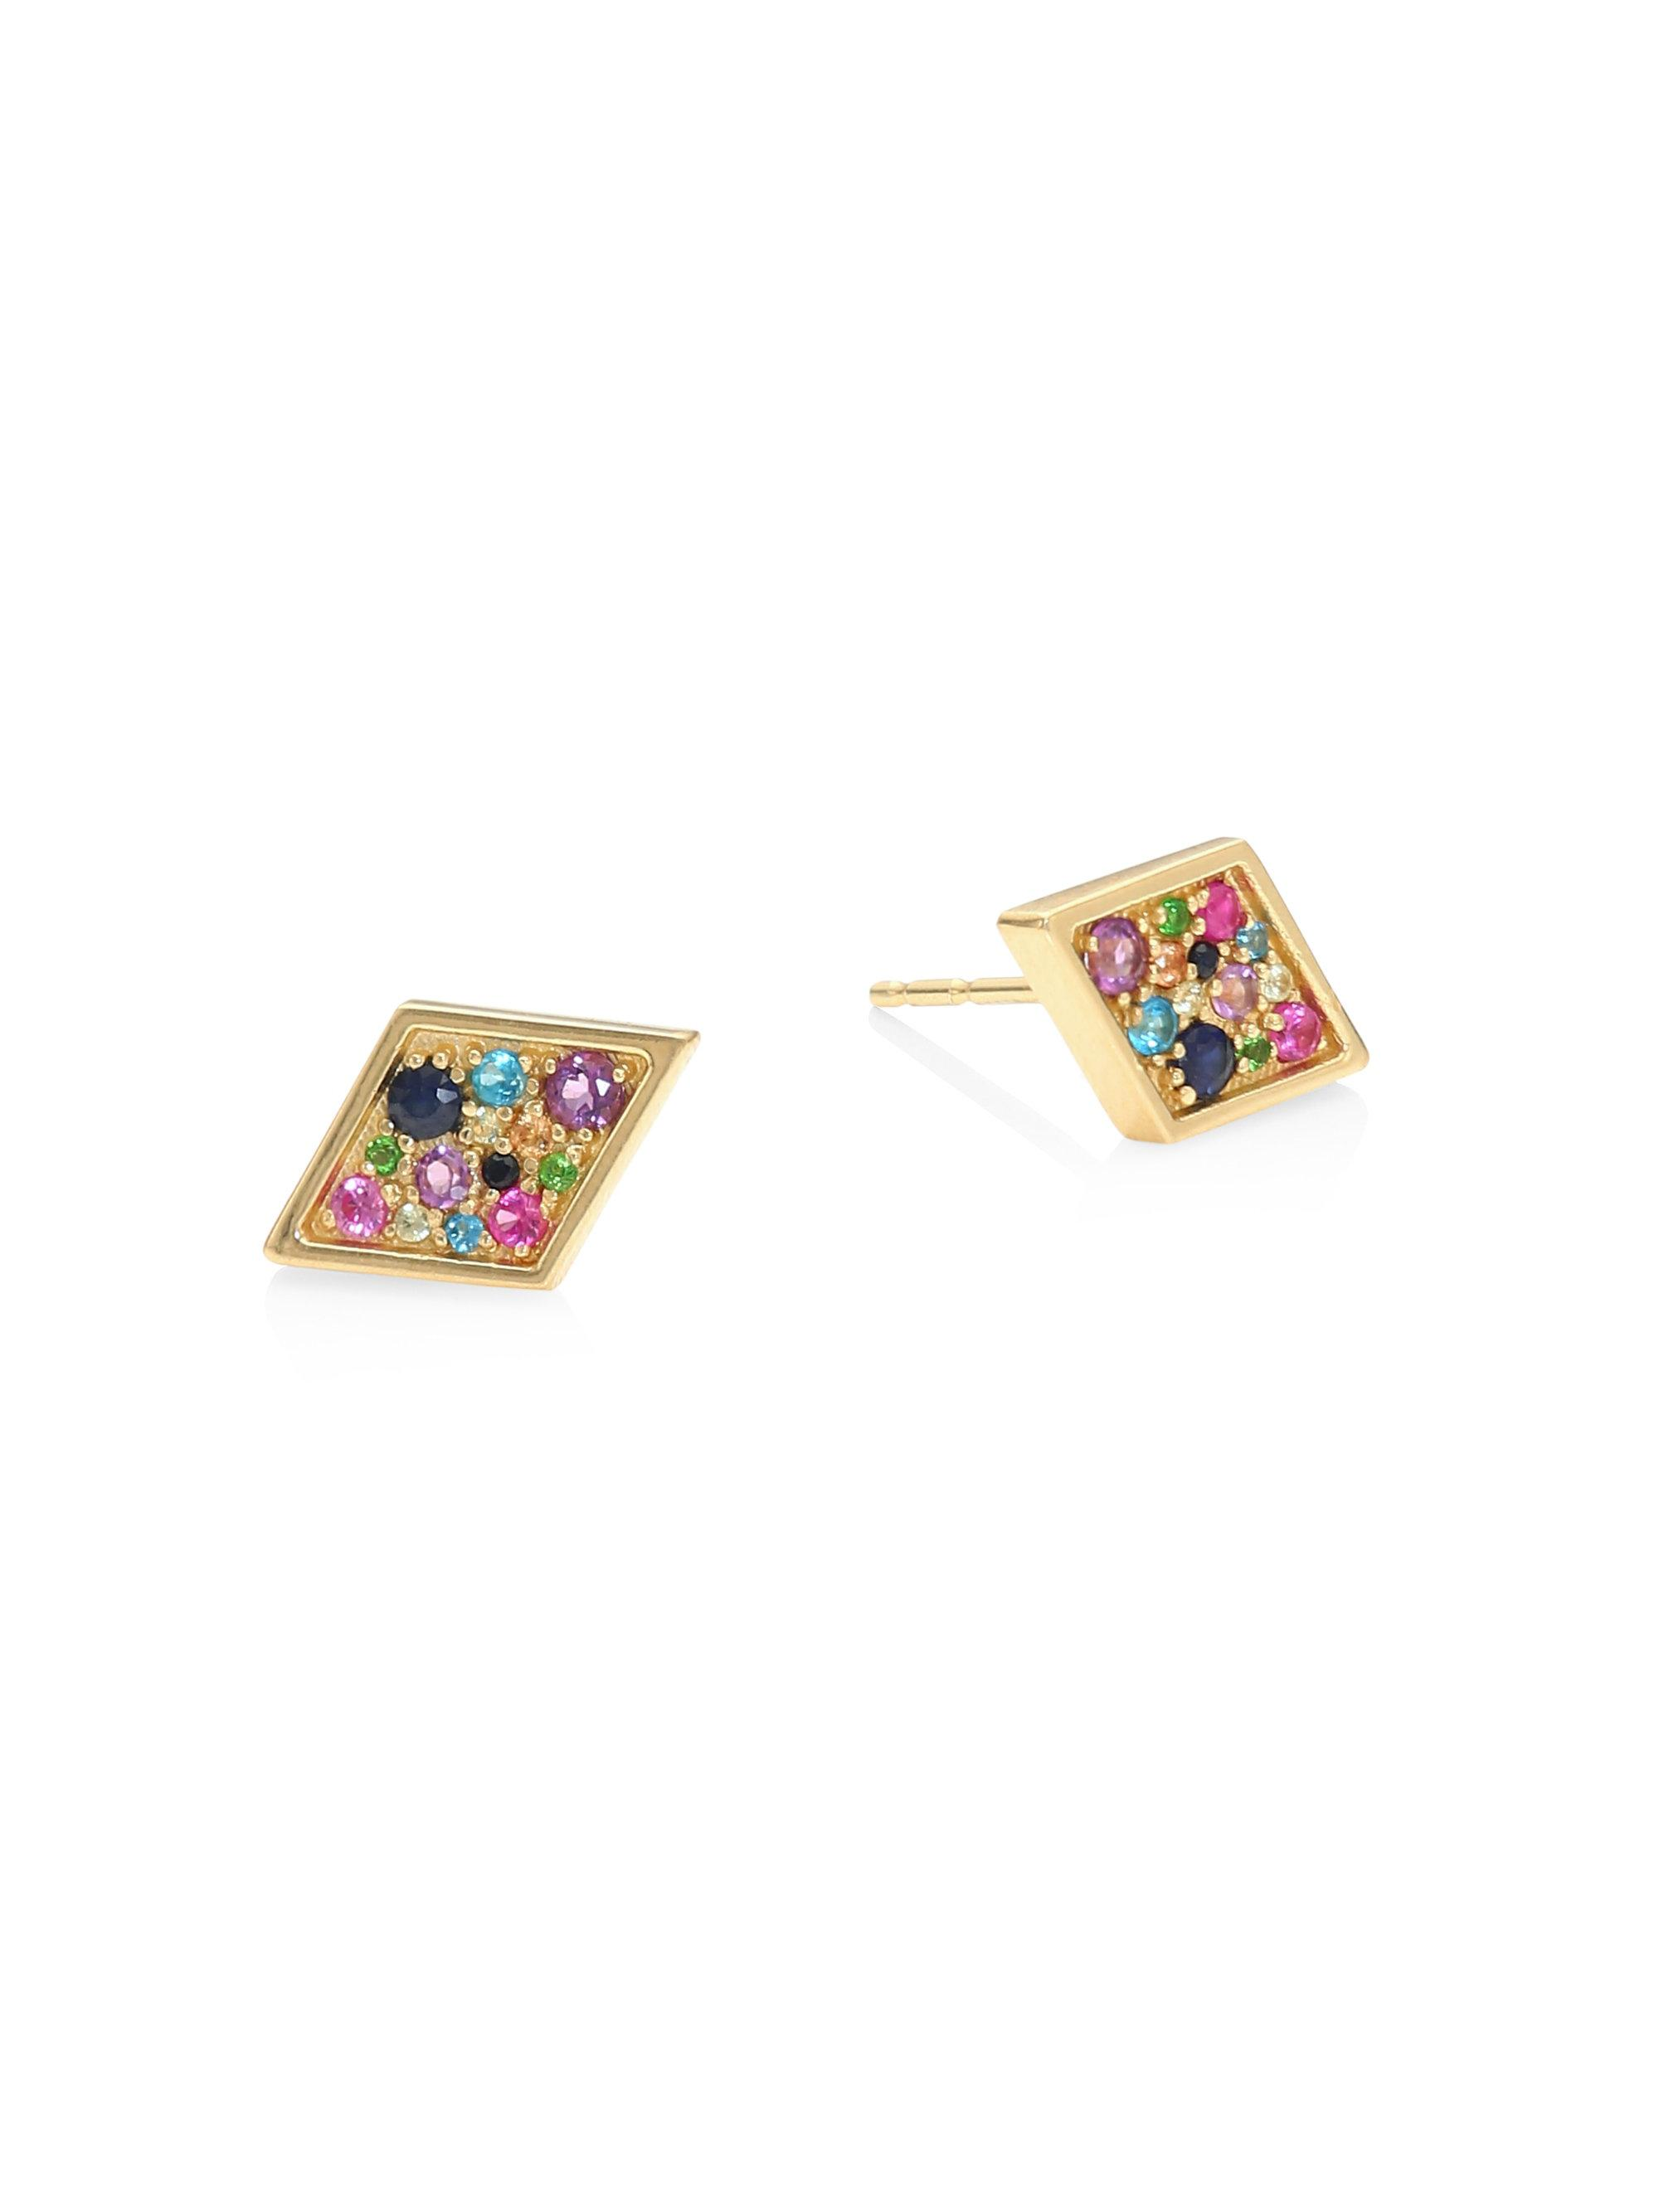 set products viranijewelers floral gold yellow earrings in stud img frame sapphire blue